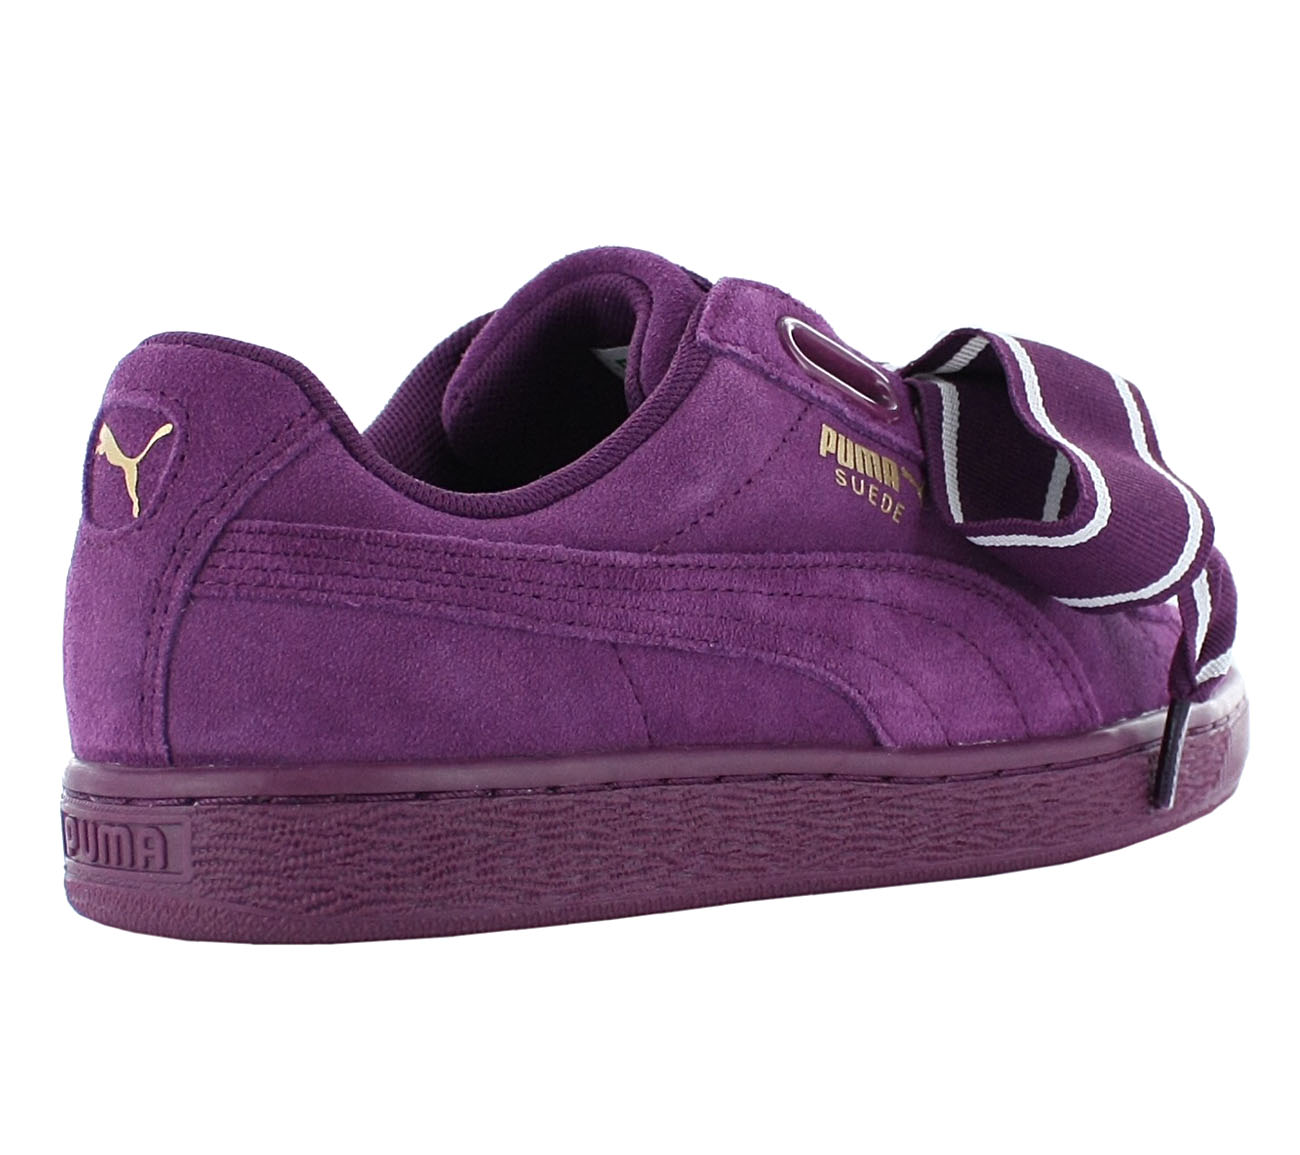 fe68df348dde Puma Suede Heart Satin 2 Women s Sneakers Shoes Violet Basket Vikky ...